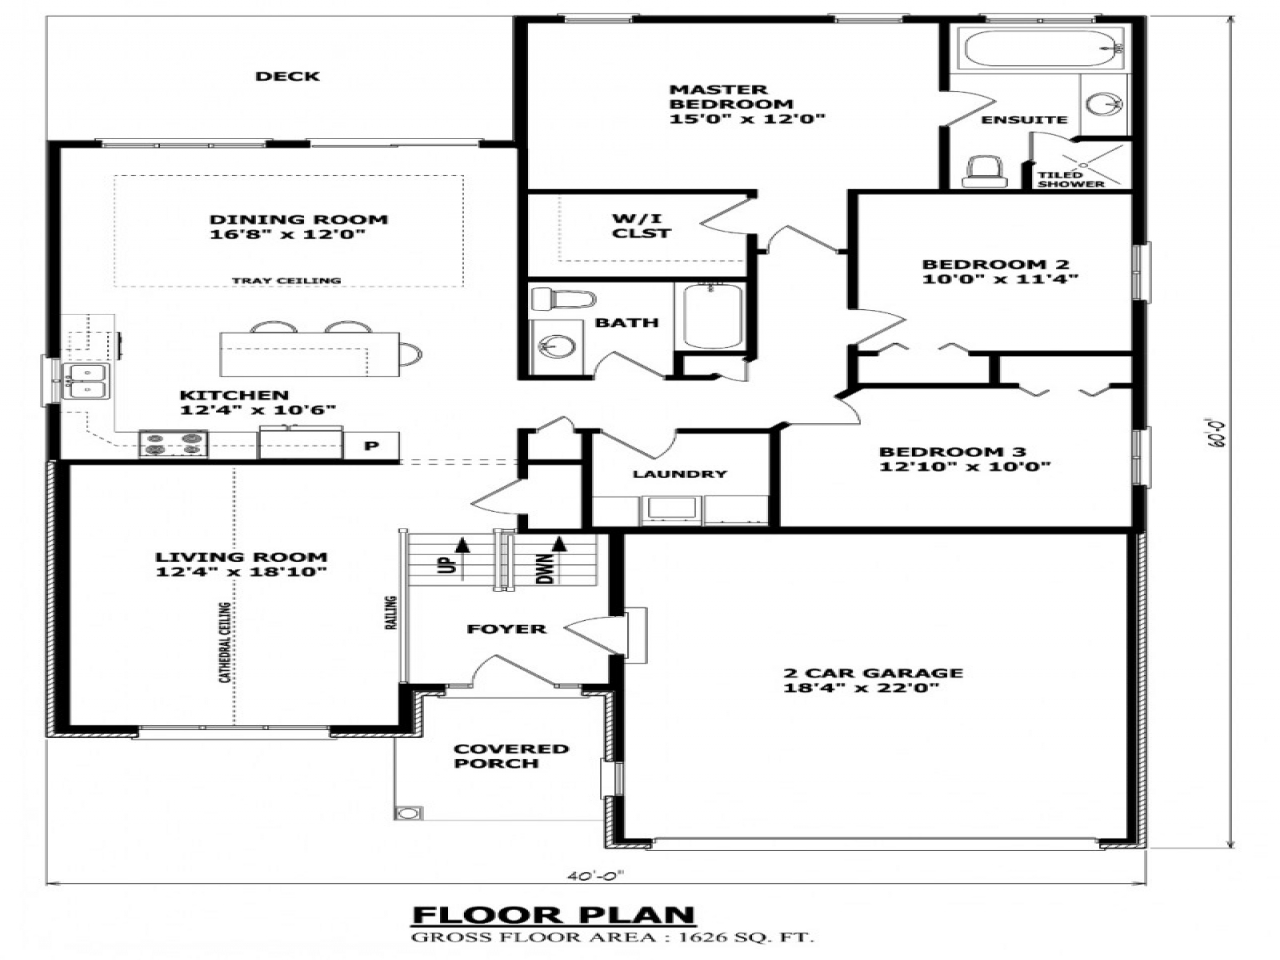 Canadian house plans french canadian style house plans for House plans in canada